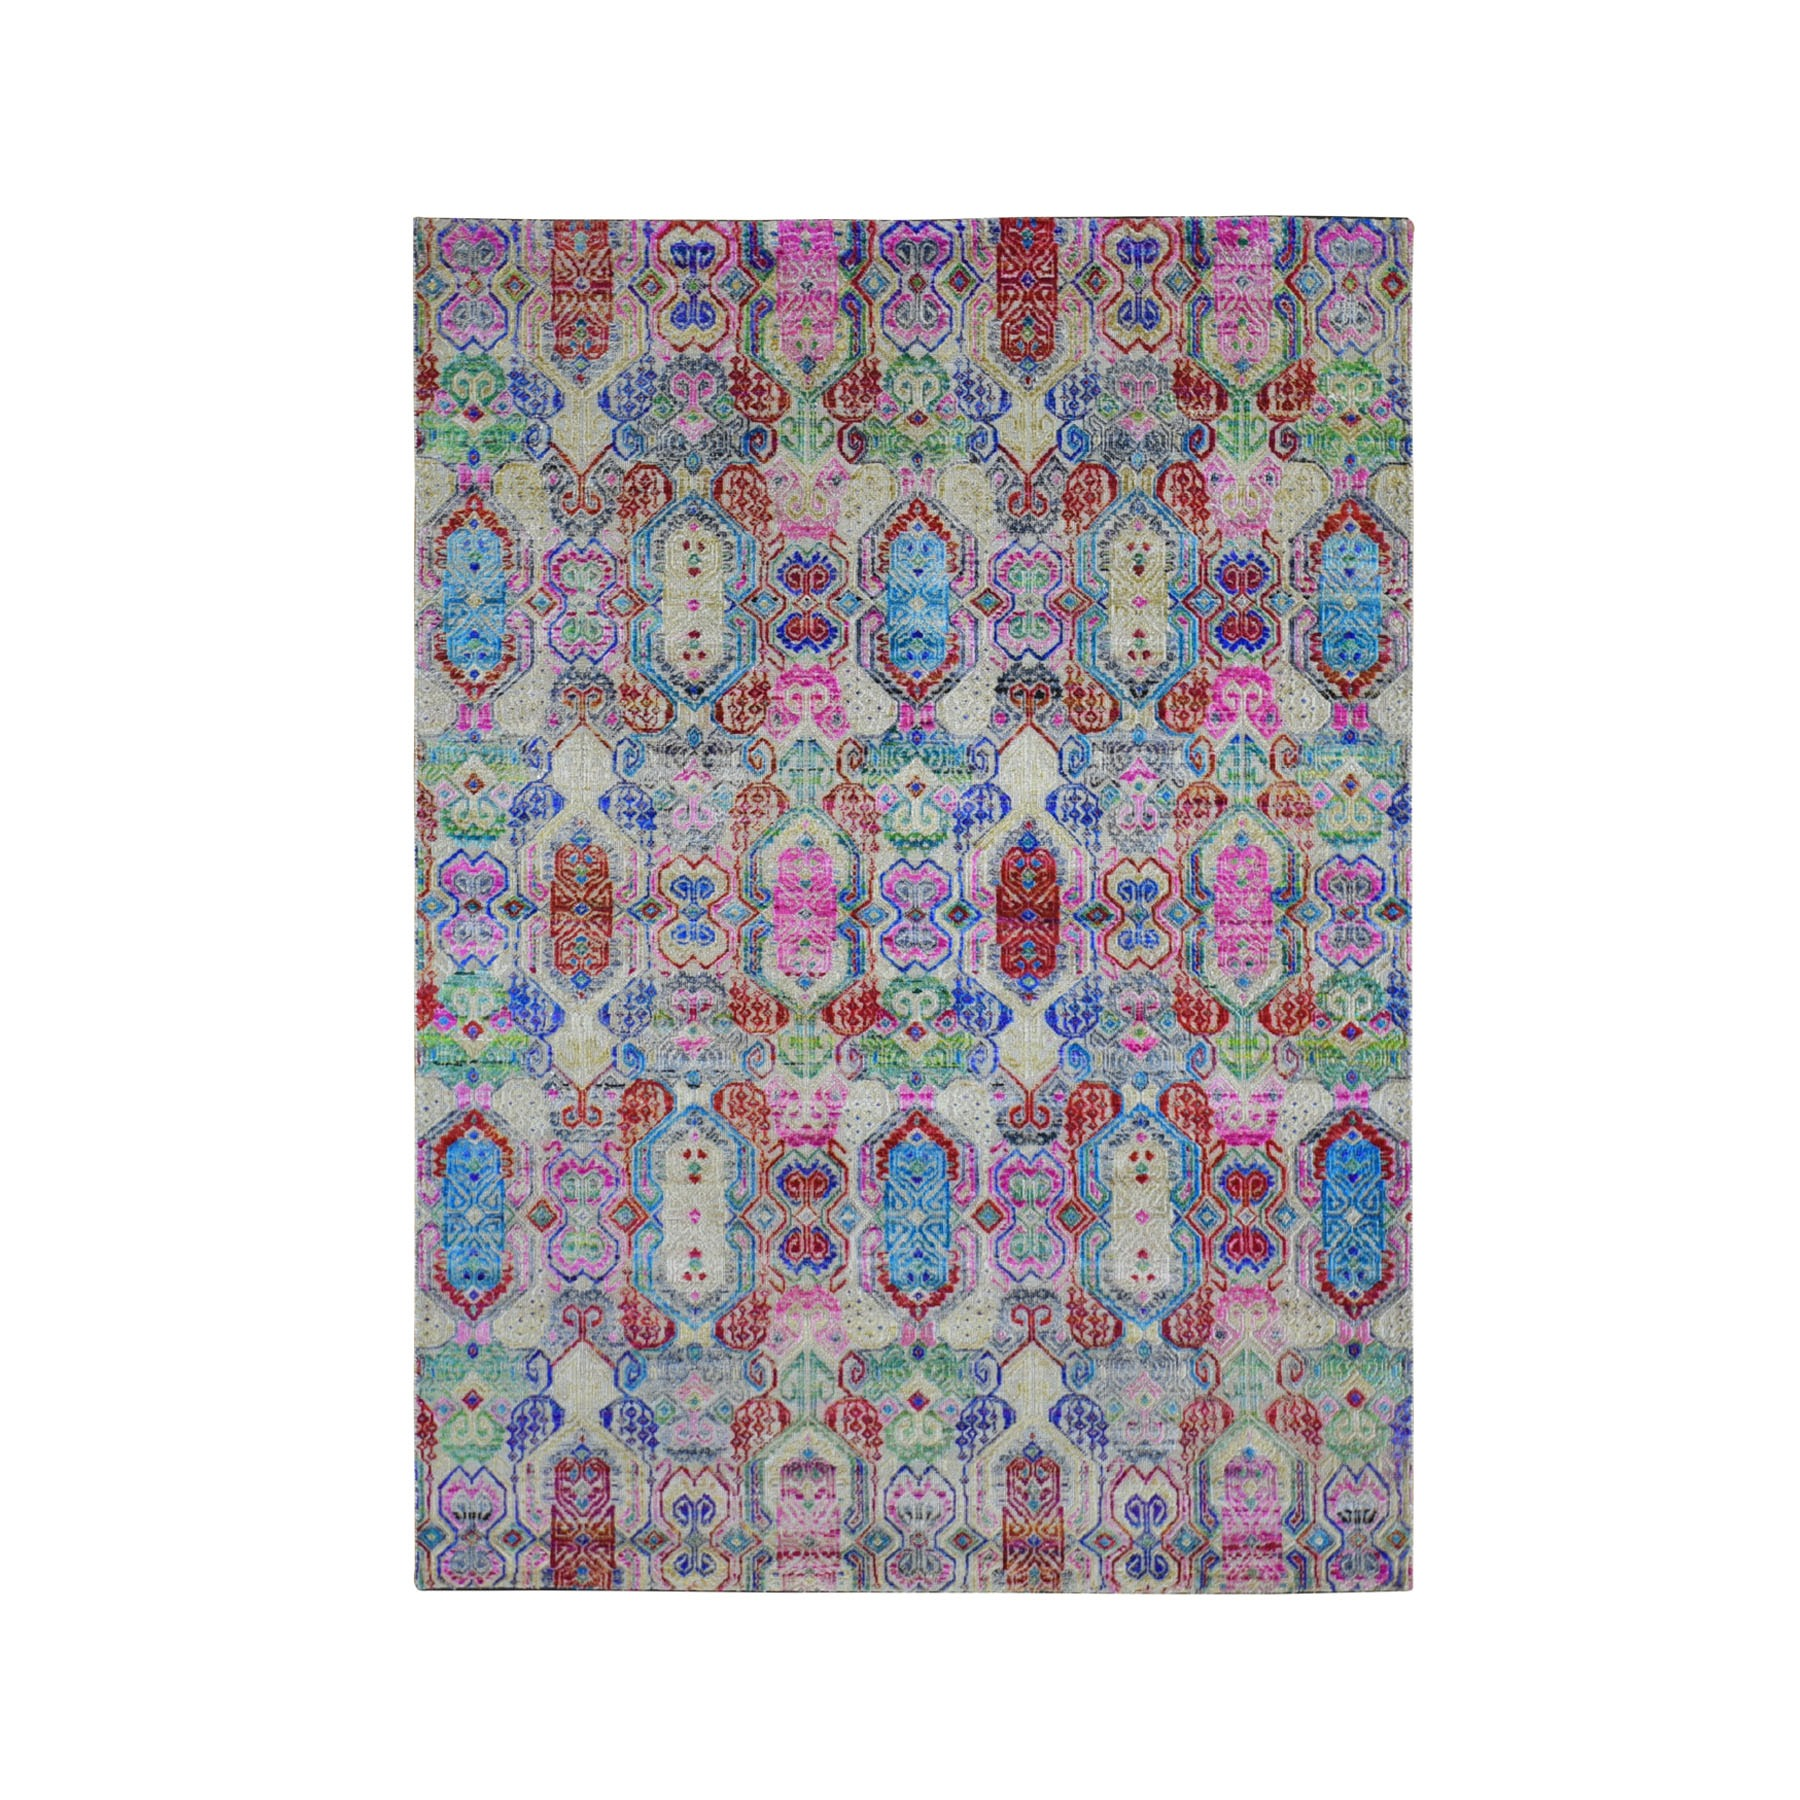 "5'x6'10"" Colorful Jewellery Design Sari Silk With Textured Wool Hand Knotted Oriental Rug"